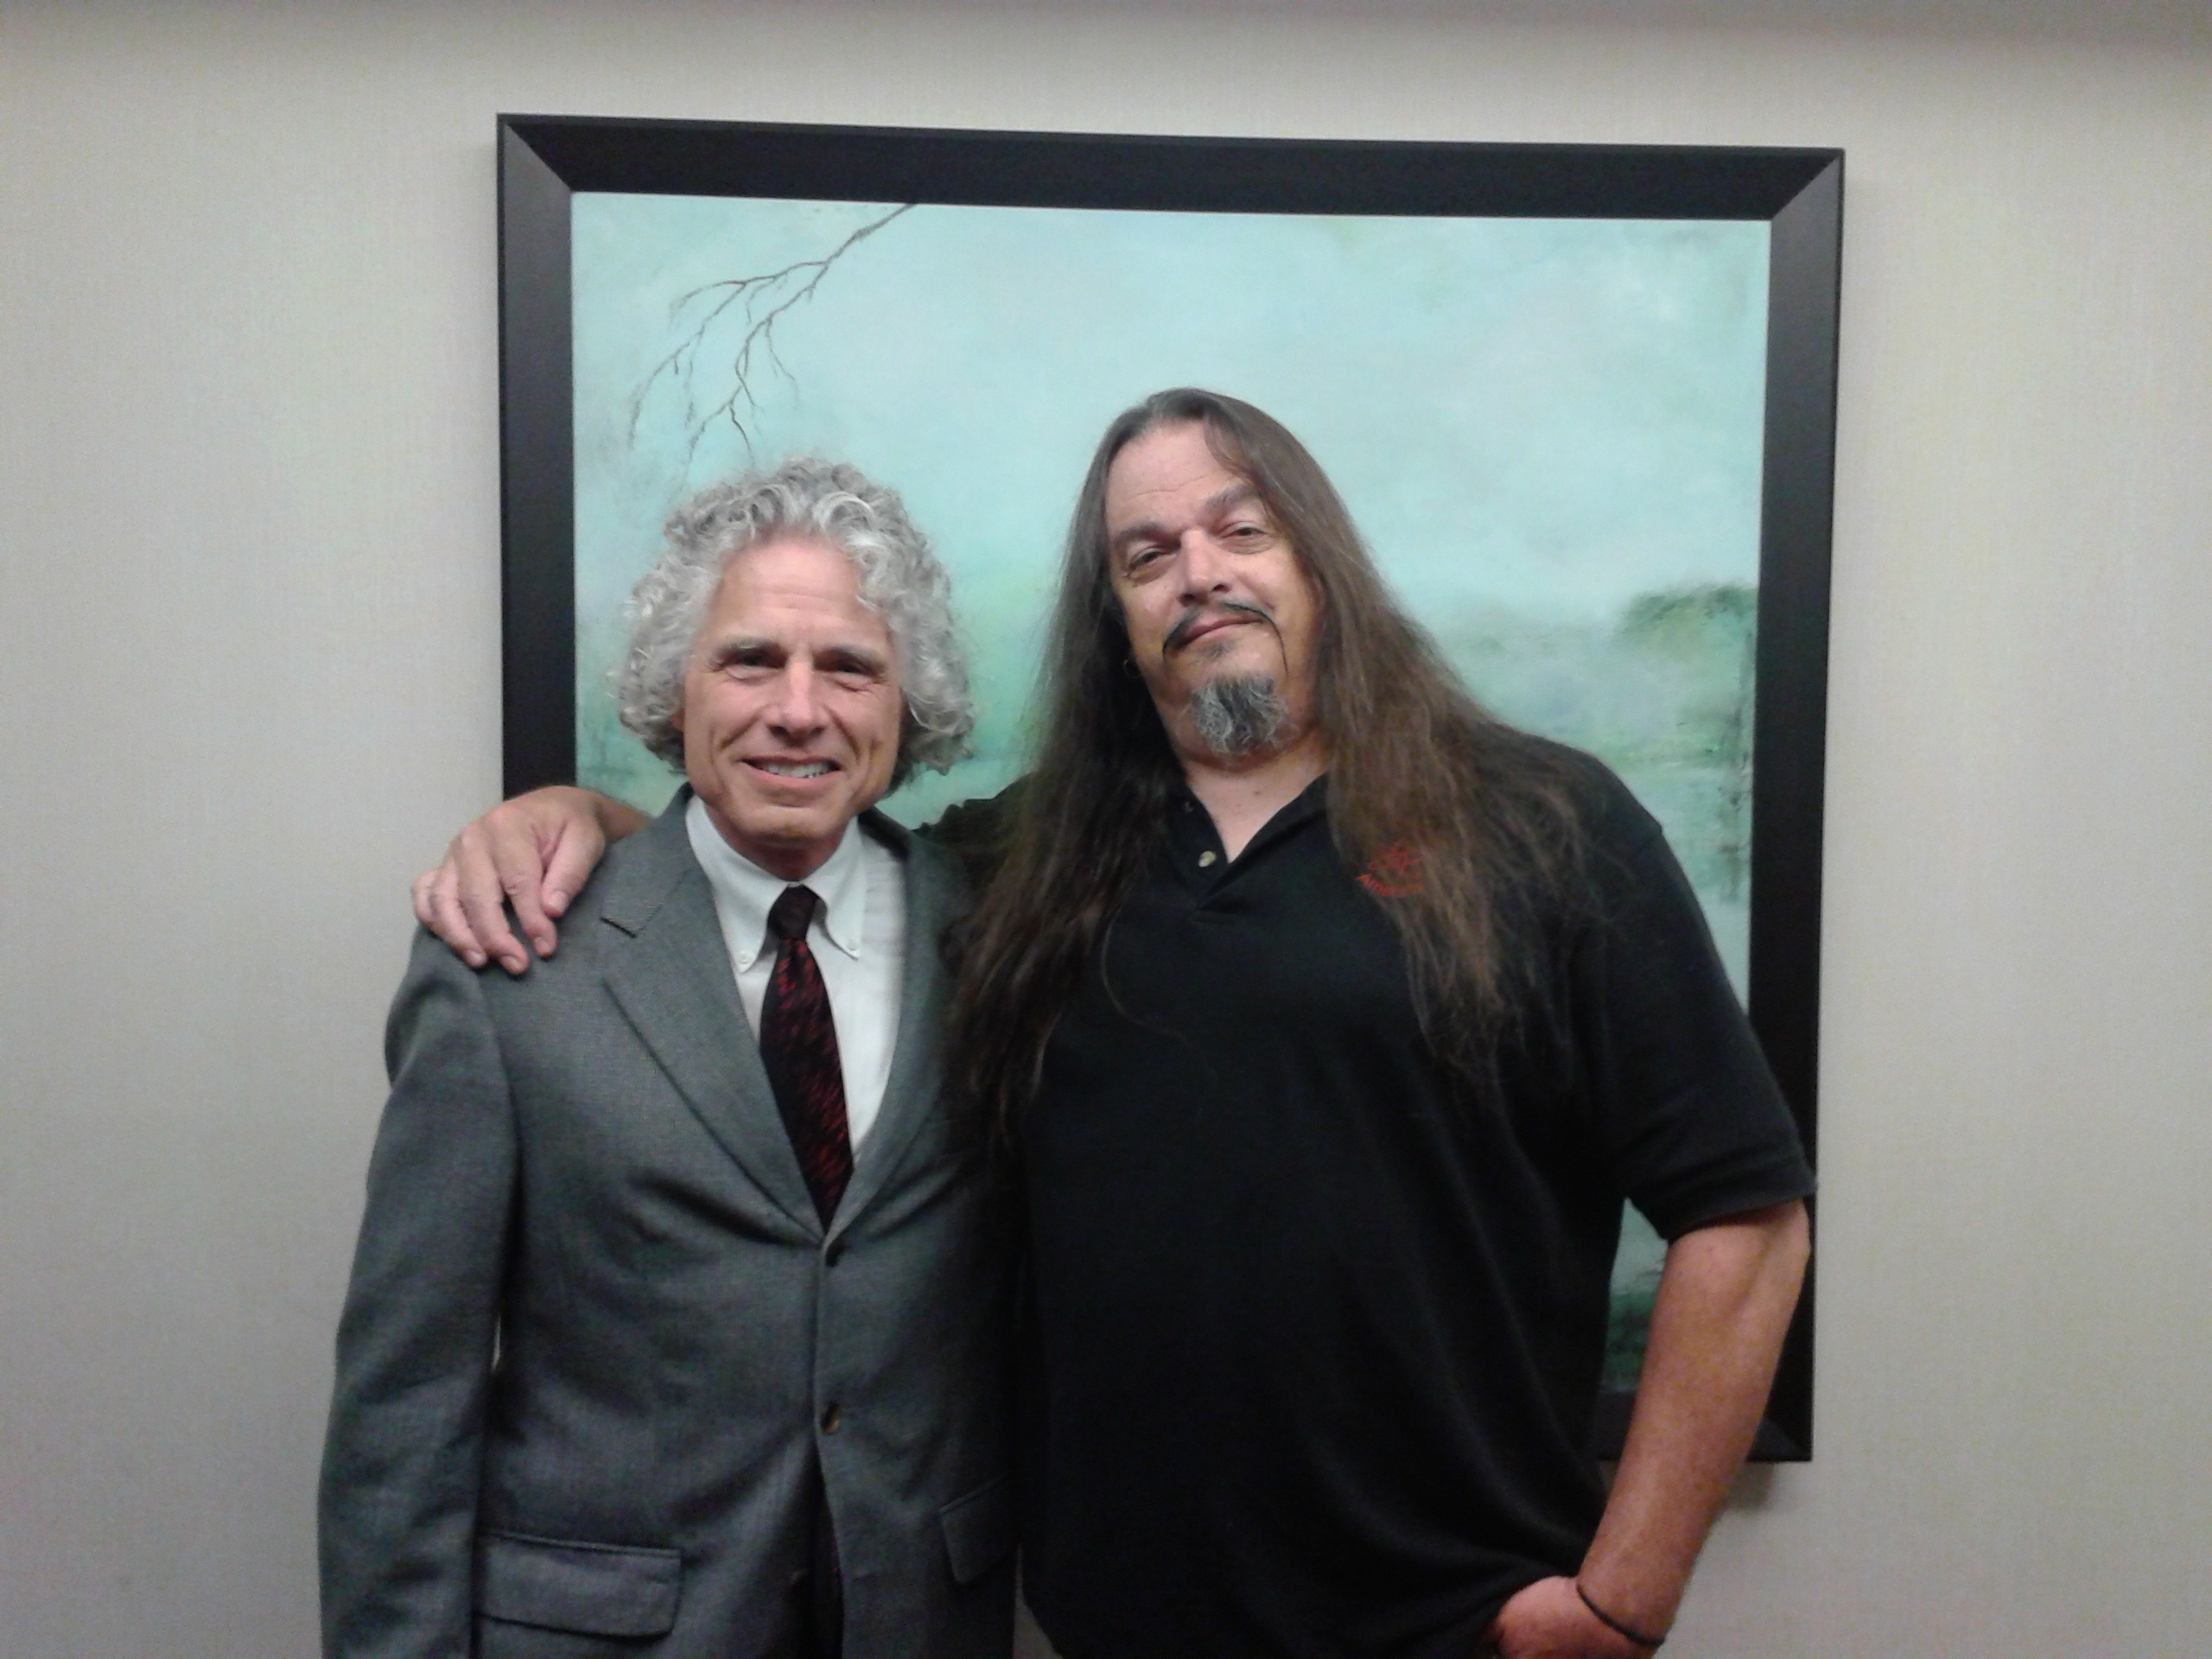 Me and Prof Steven Pinker, just a couple hours before he received the Richard Dawkins award.